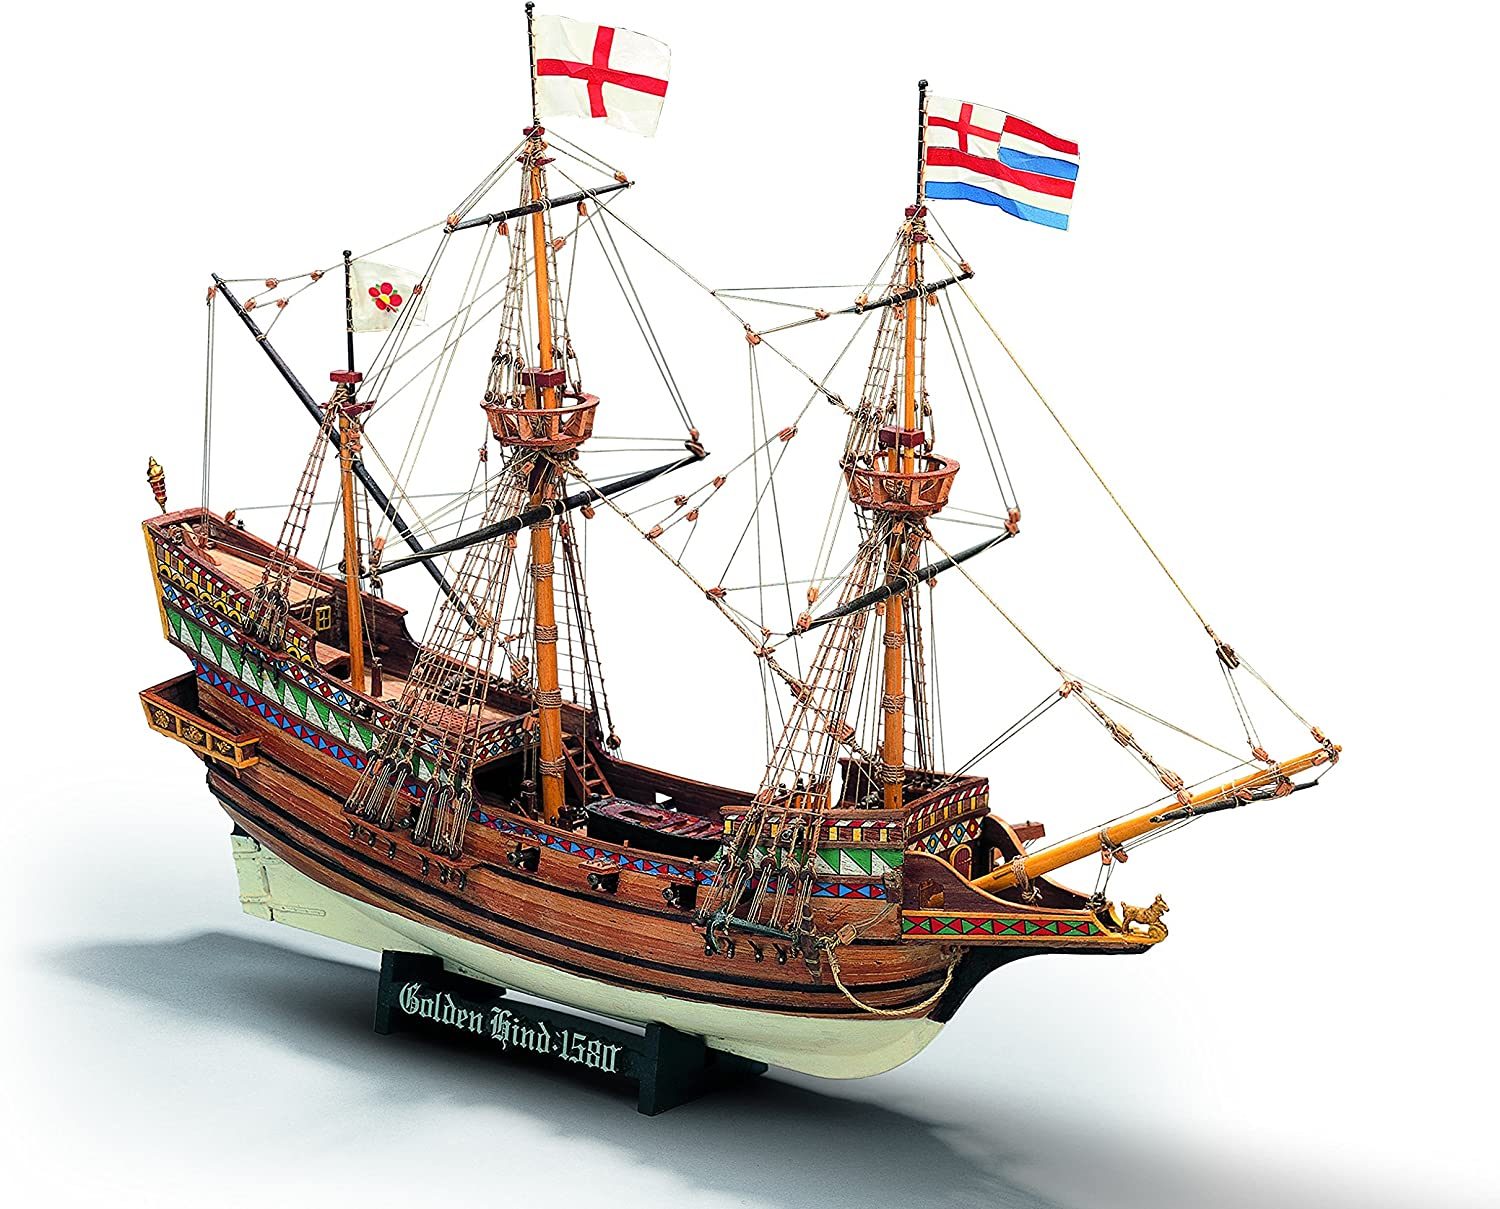 MINI MAMOLI - Modello Kit Barca Golden HIND Serie Scala 1 110 - DUS_MM71